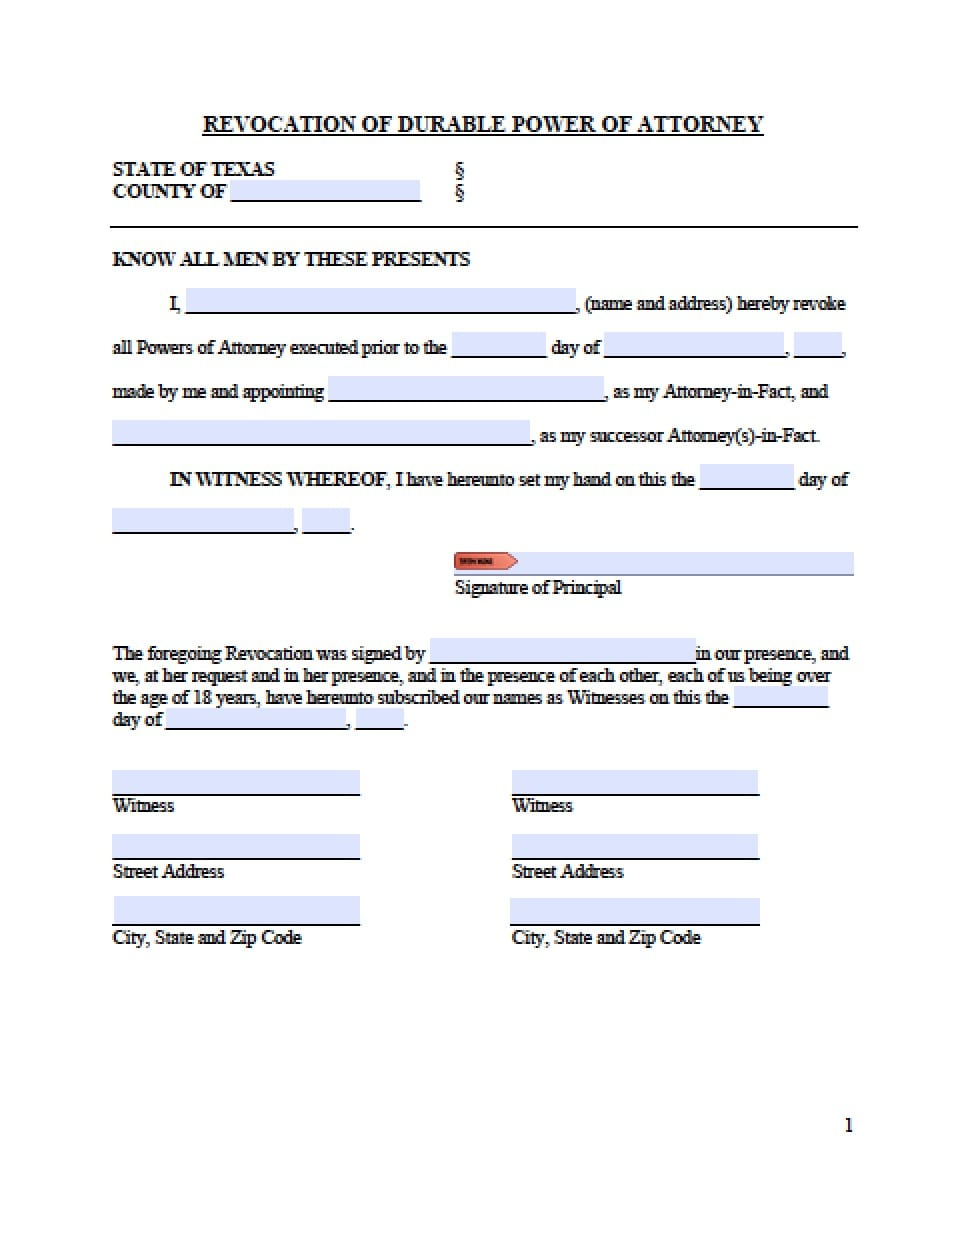 Medical power attorney forms printable medical power attorney forms falaconquin